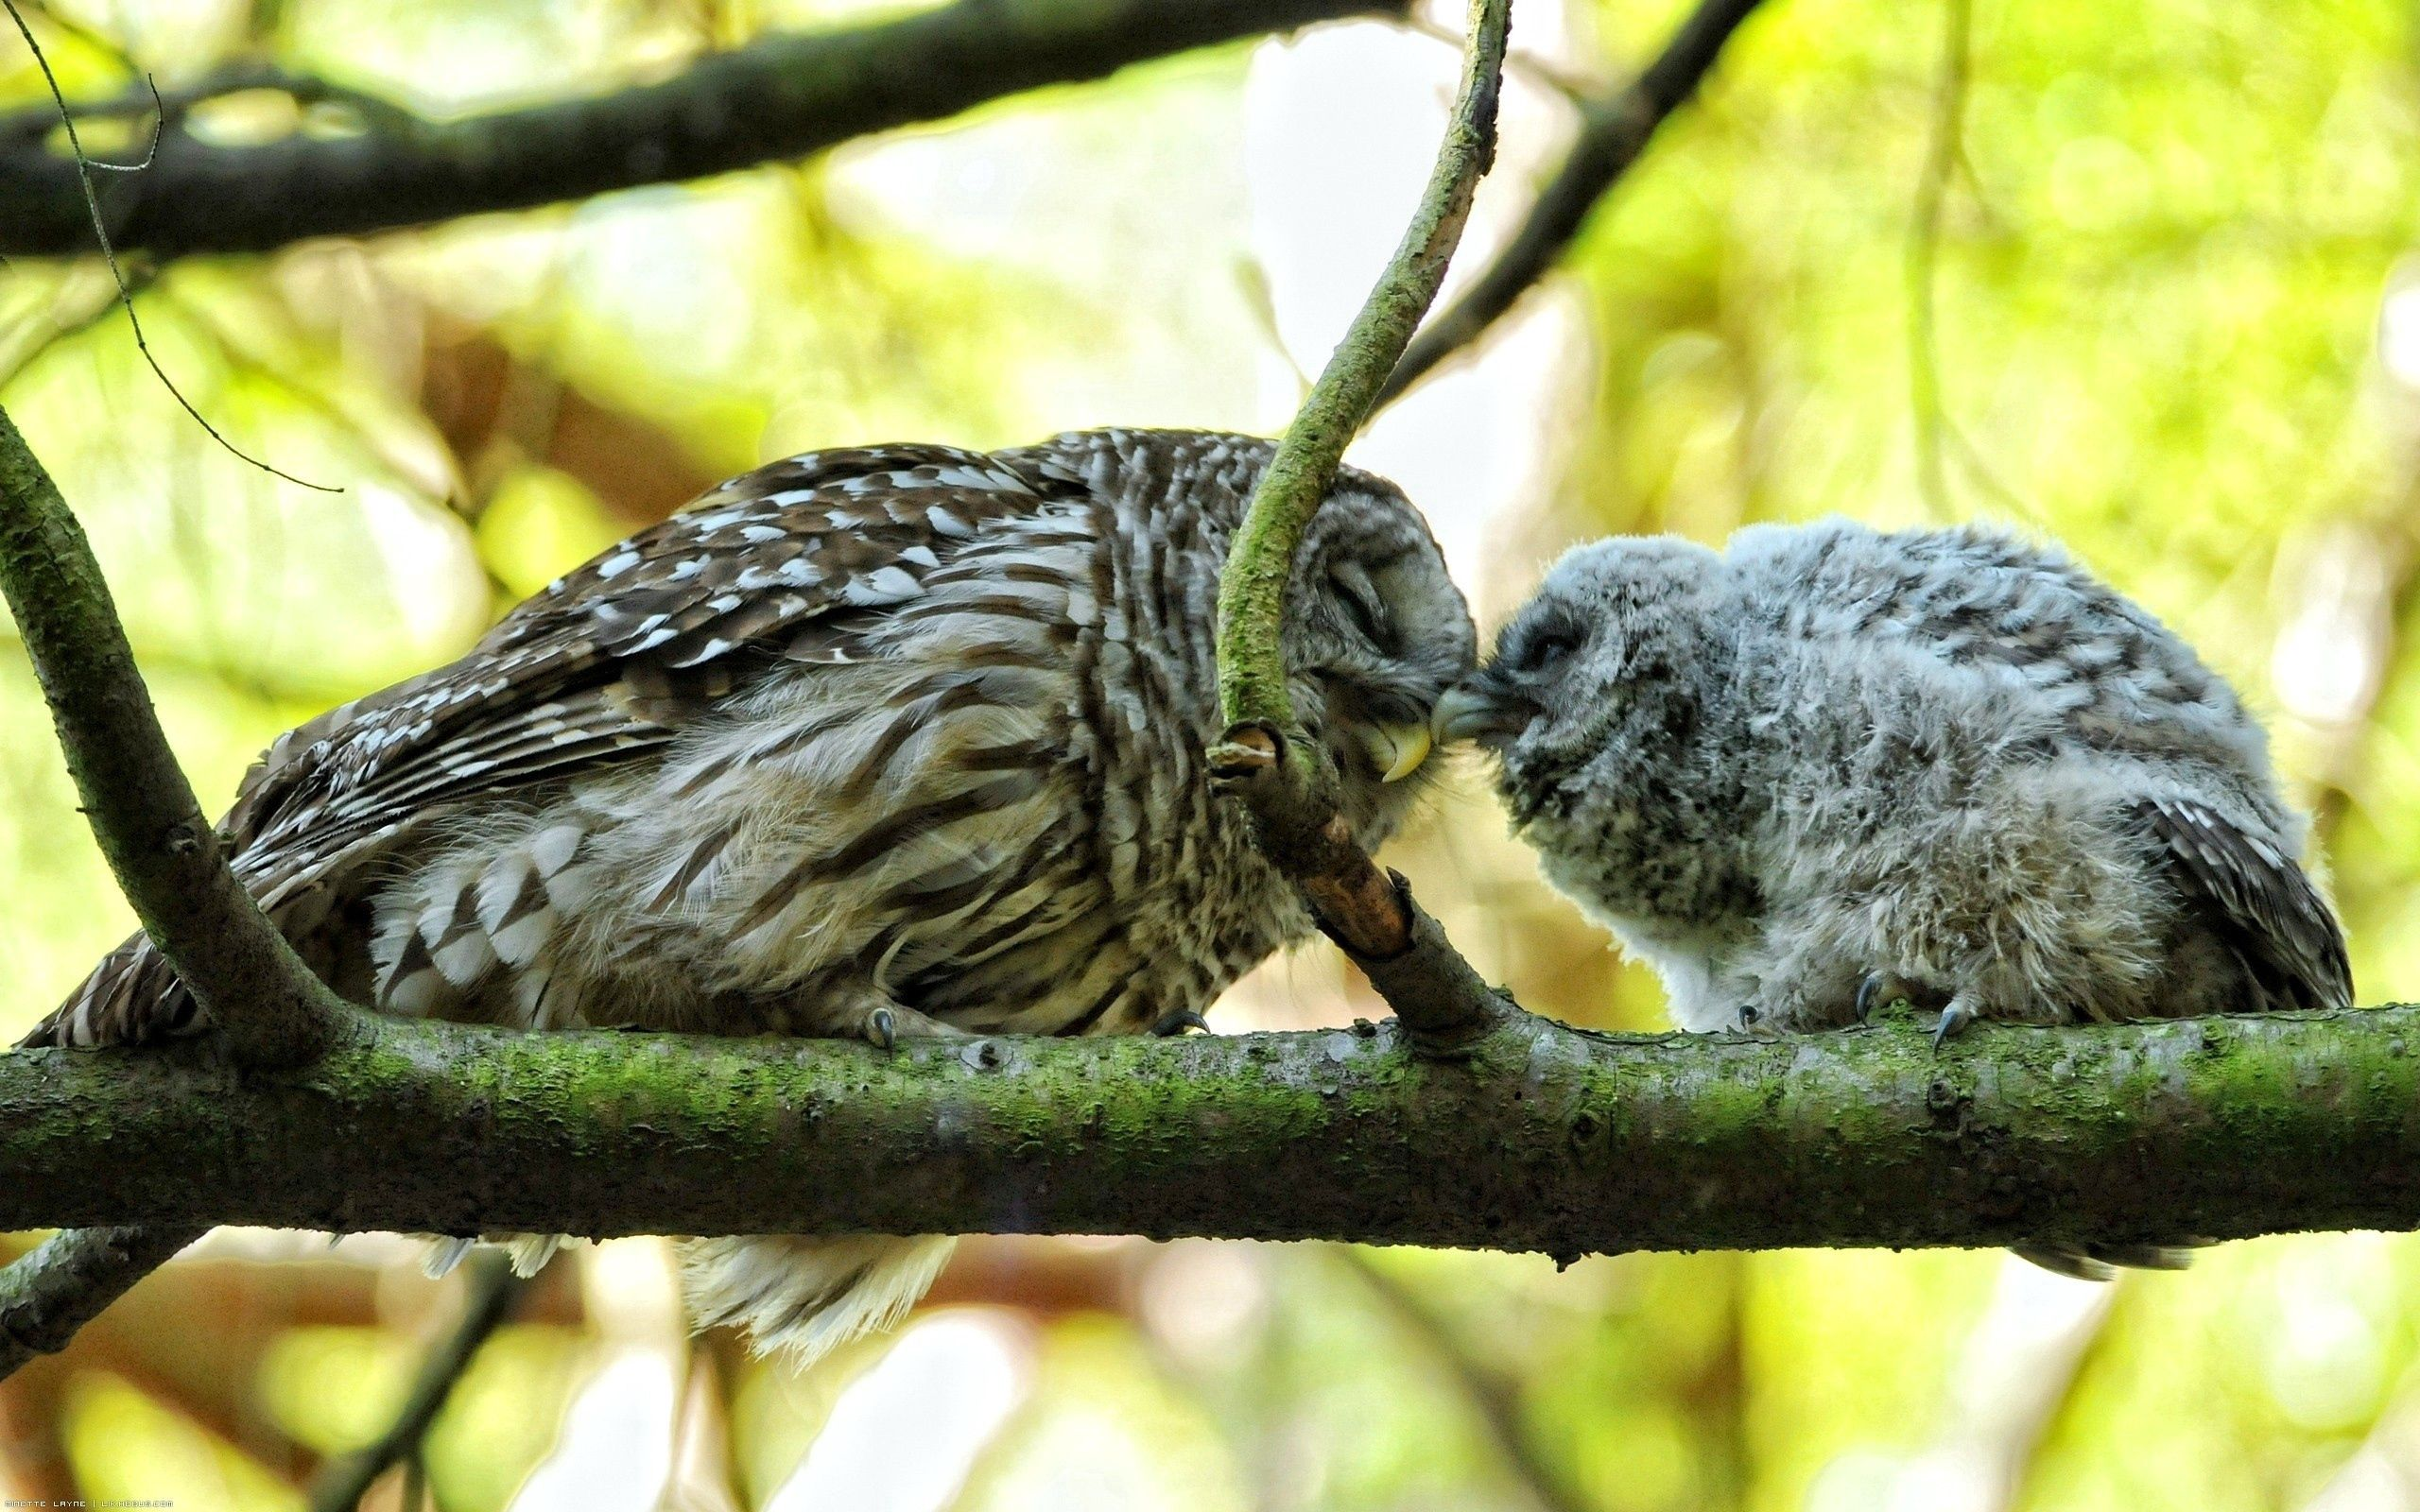 142667 download wallpaper Animals, Couple, Pair, Tenderness, Branches, Birds, Owl screensavers and pictures for free